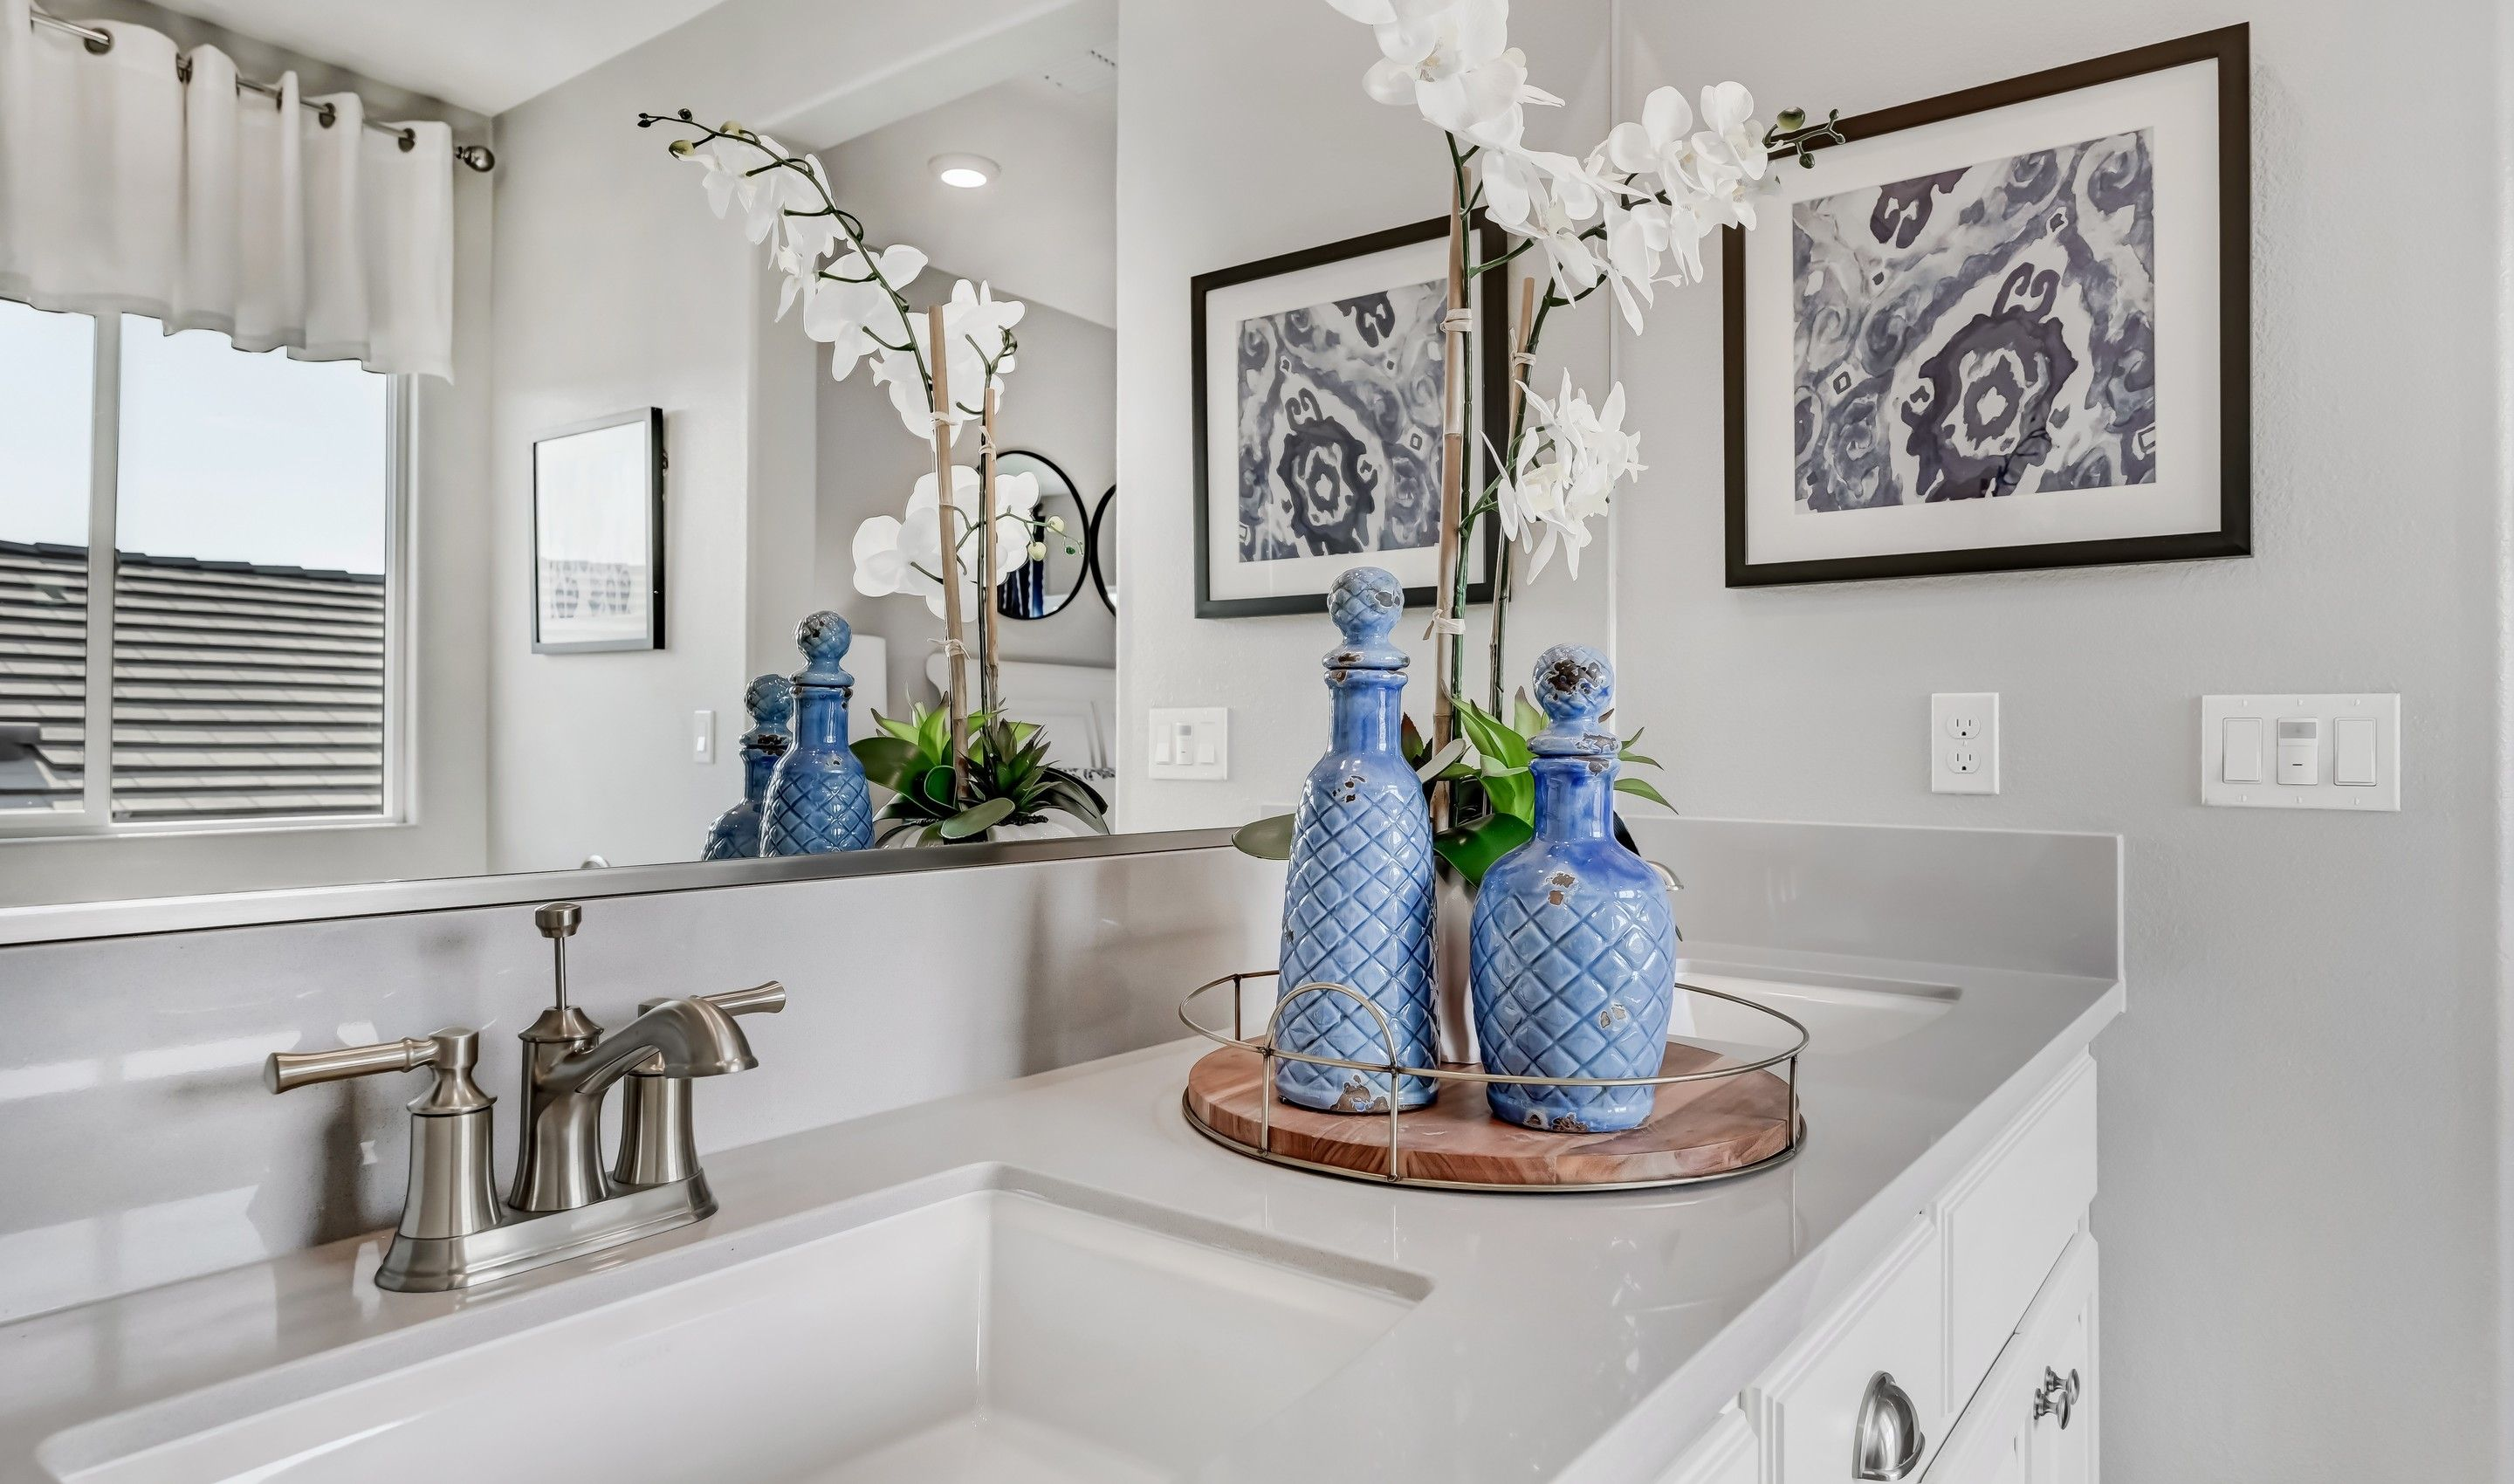 Bathroom featured in the Aspen By K. Hovnanian® Homes in Stockton-Lodi, CA